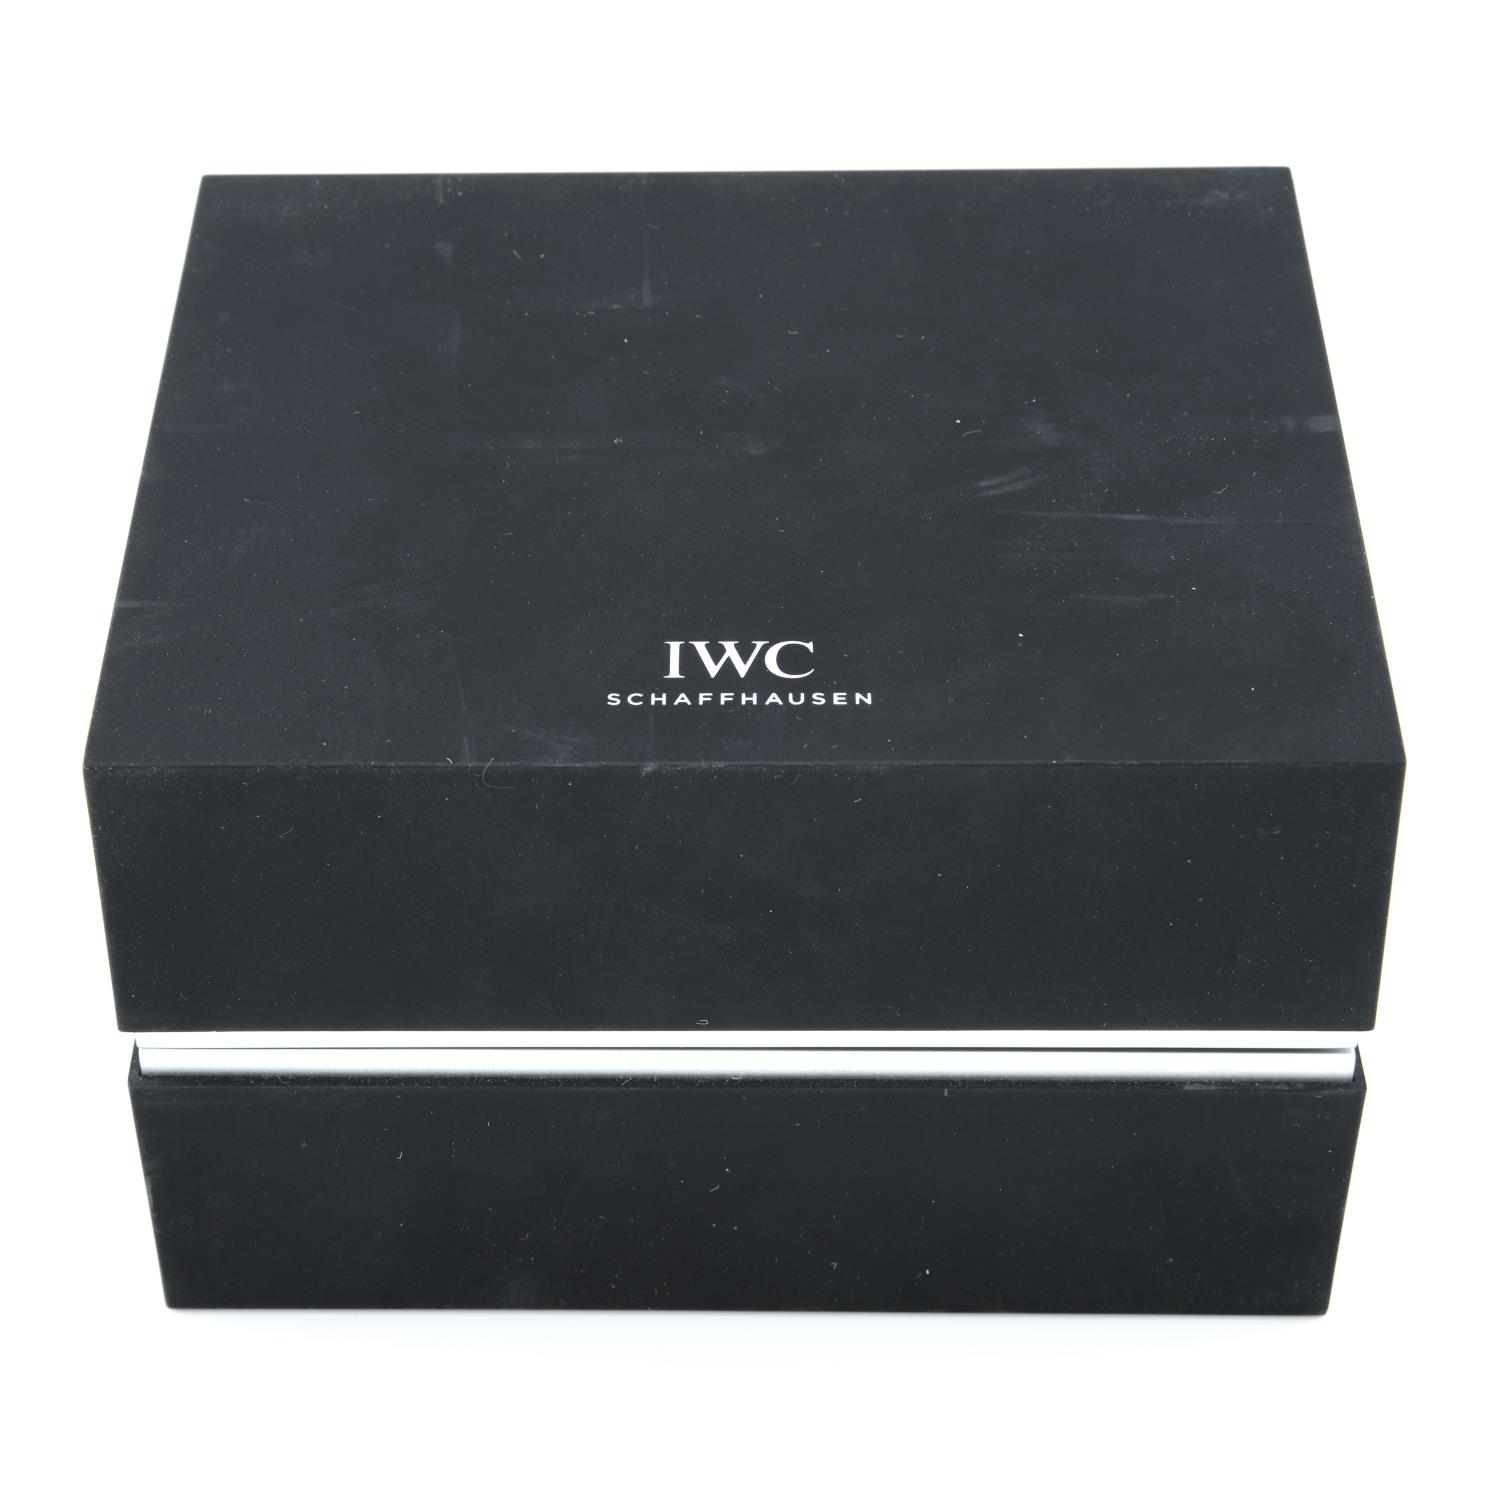 IWC - a group of ten watch boxes and service pouches, some incomplete.